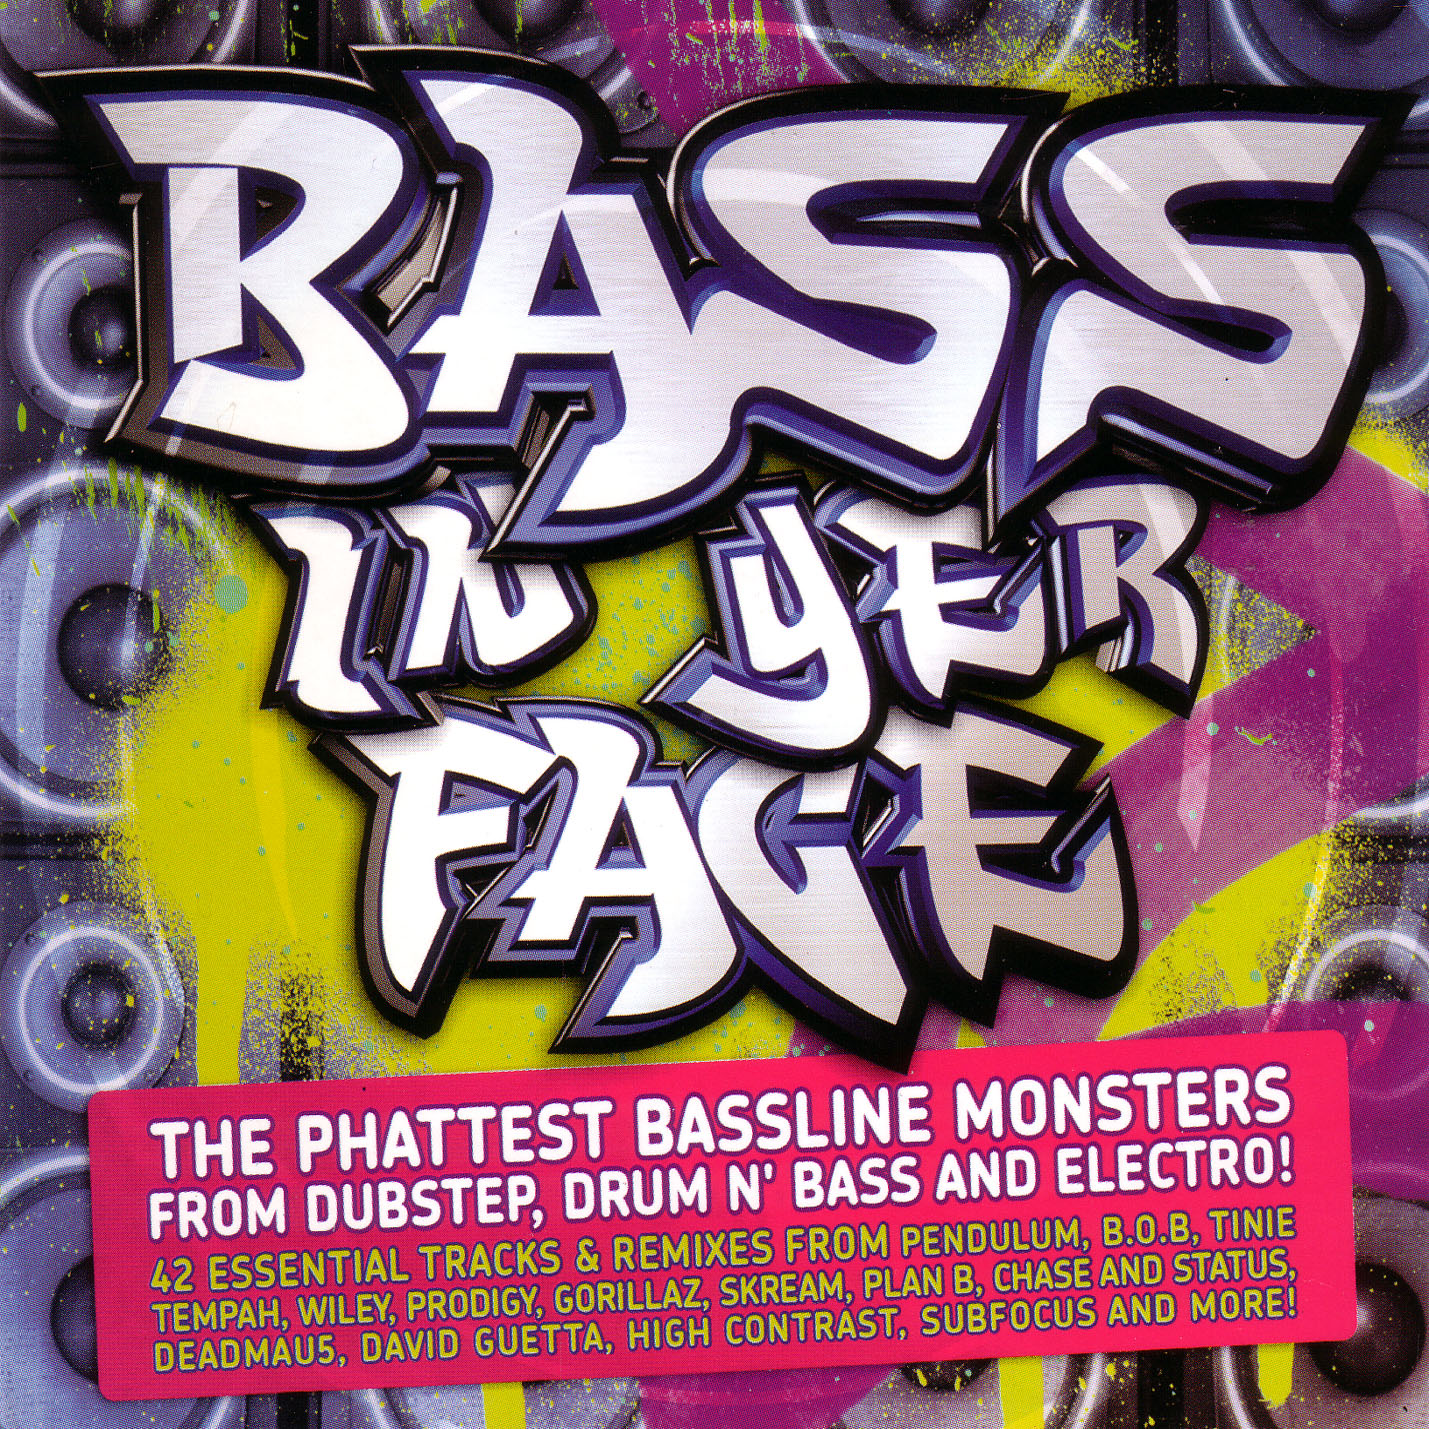 VA - Bass In Yer Face 2cds 2010 +covers 320 @BSBT